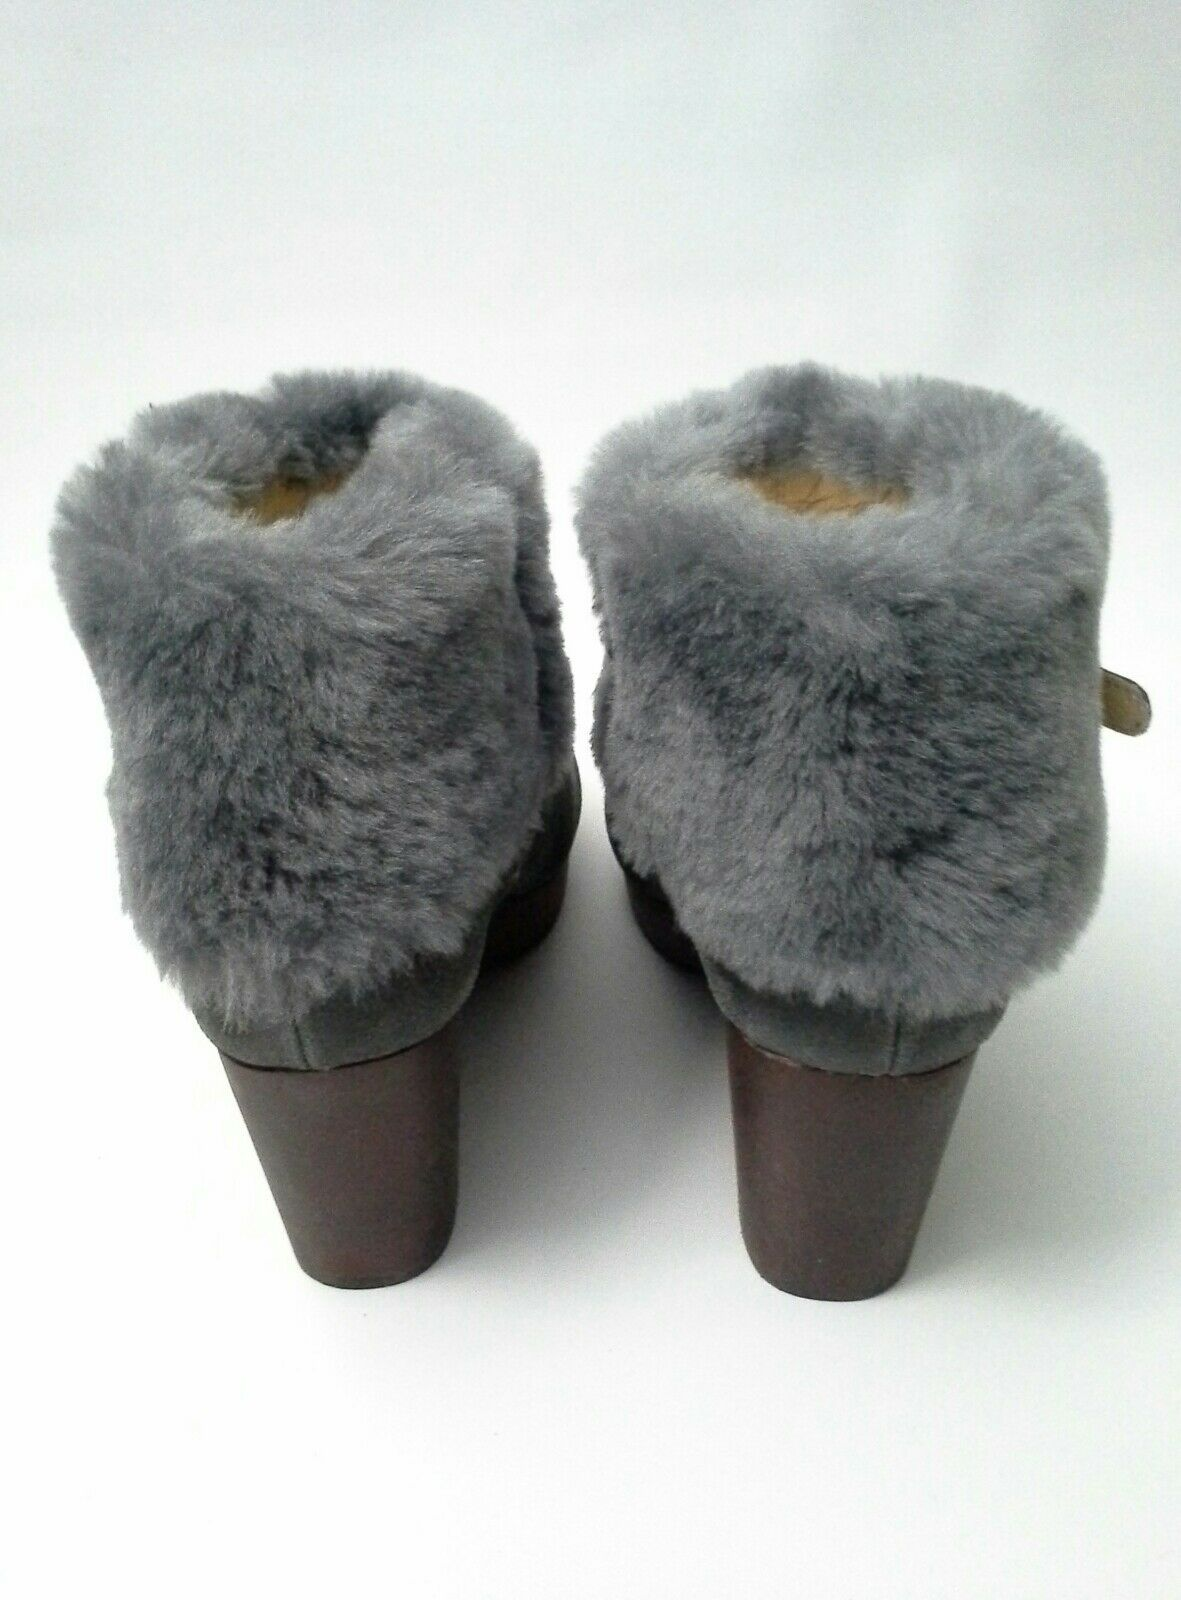 Anthropologie Anthropologie Anthropologie Seth Clog Platform Booties Suede Faux Fur Grau Größe 6.5 1cc4a2